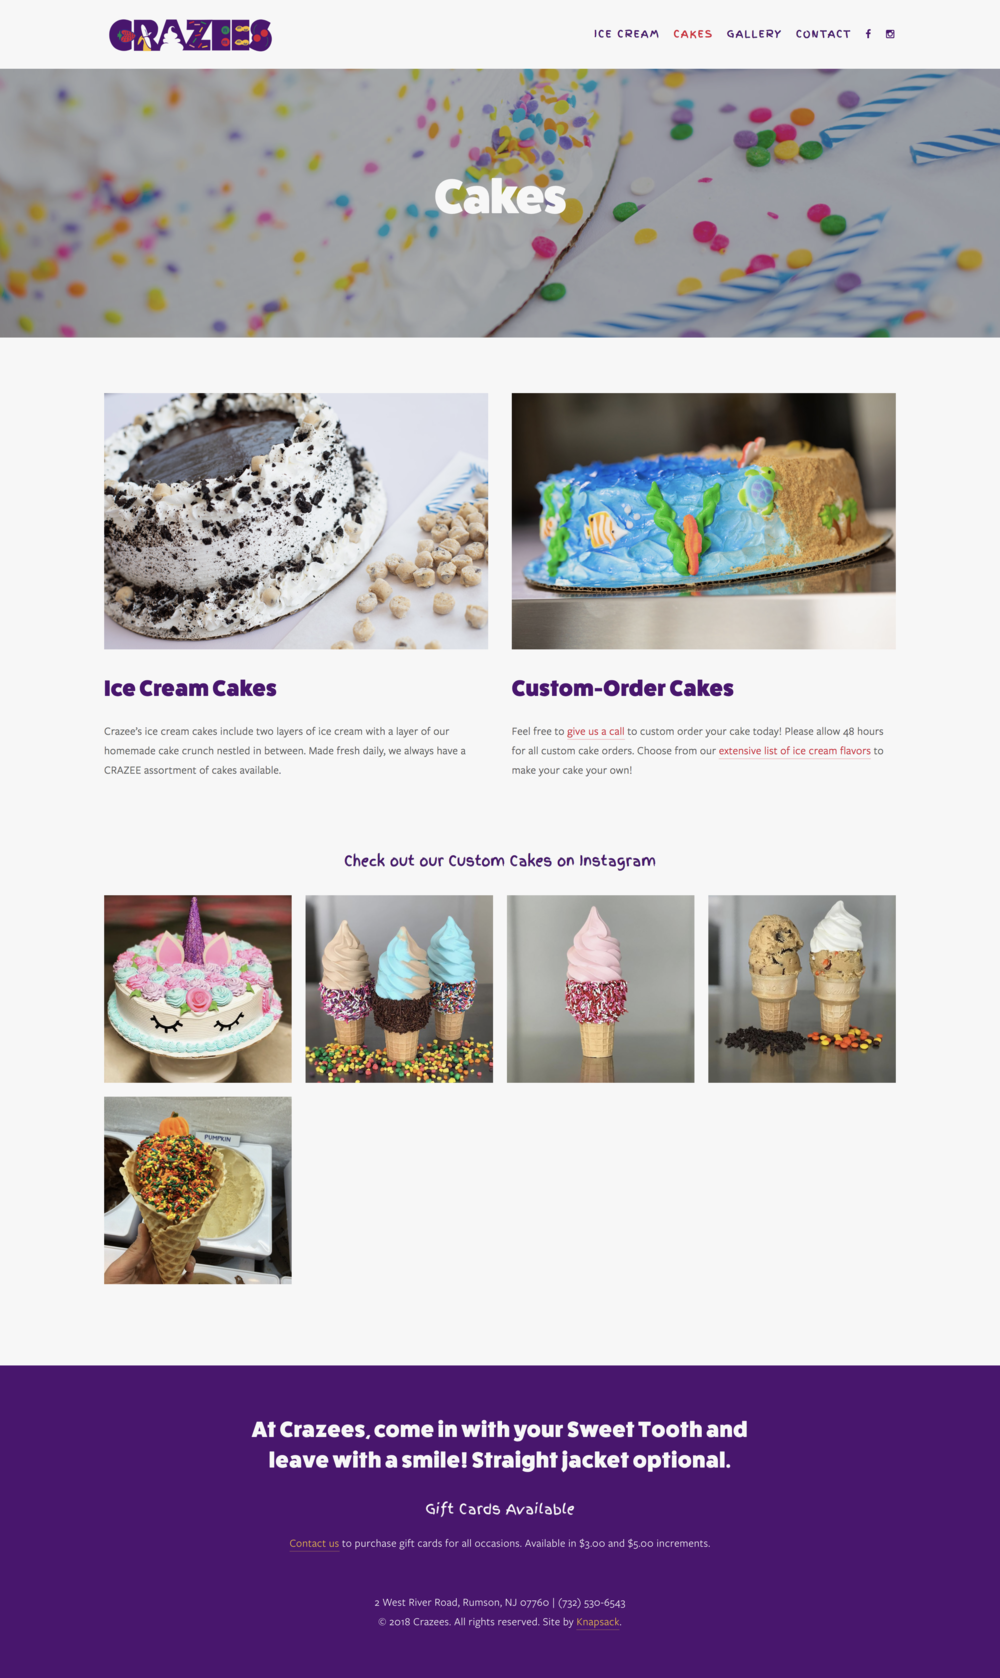 Crazees-Cakes-Overlay.png